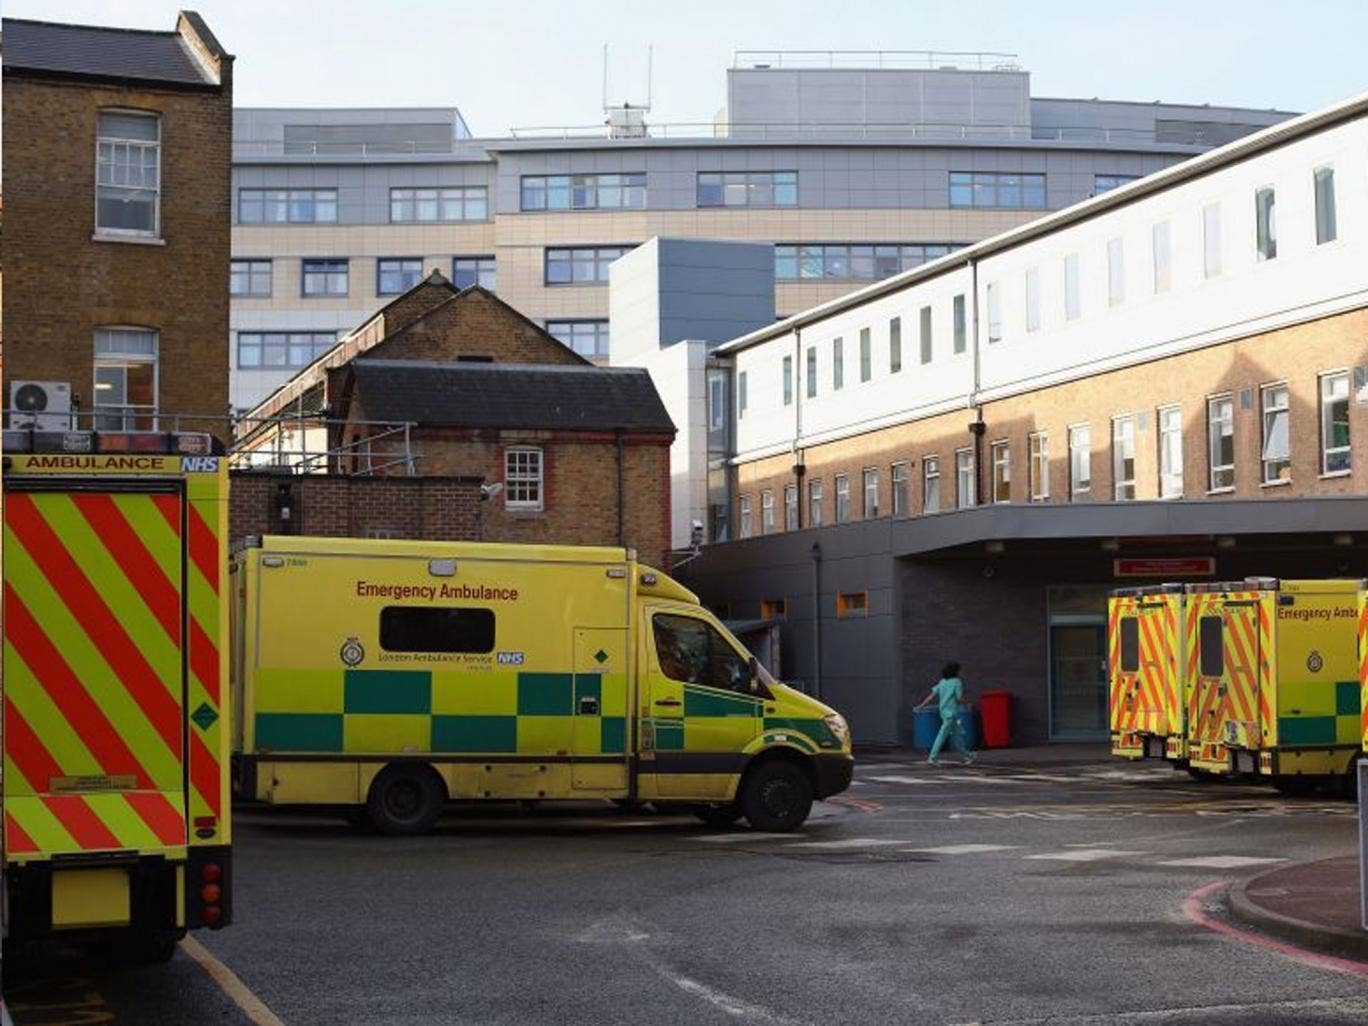 NHS survey shows targets will be missed